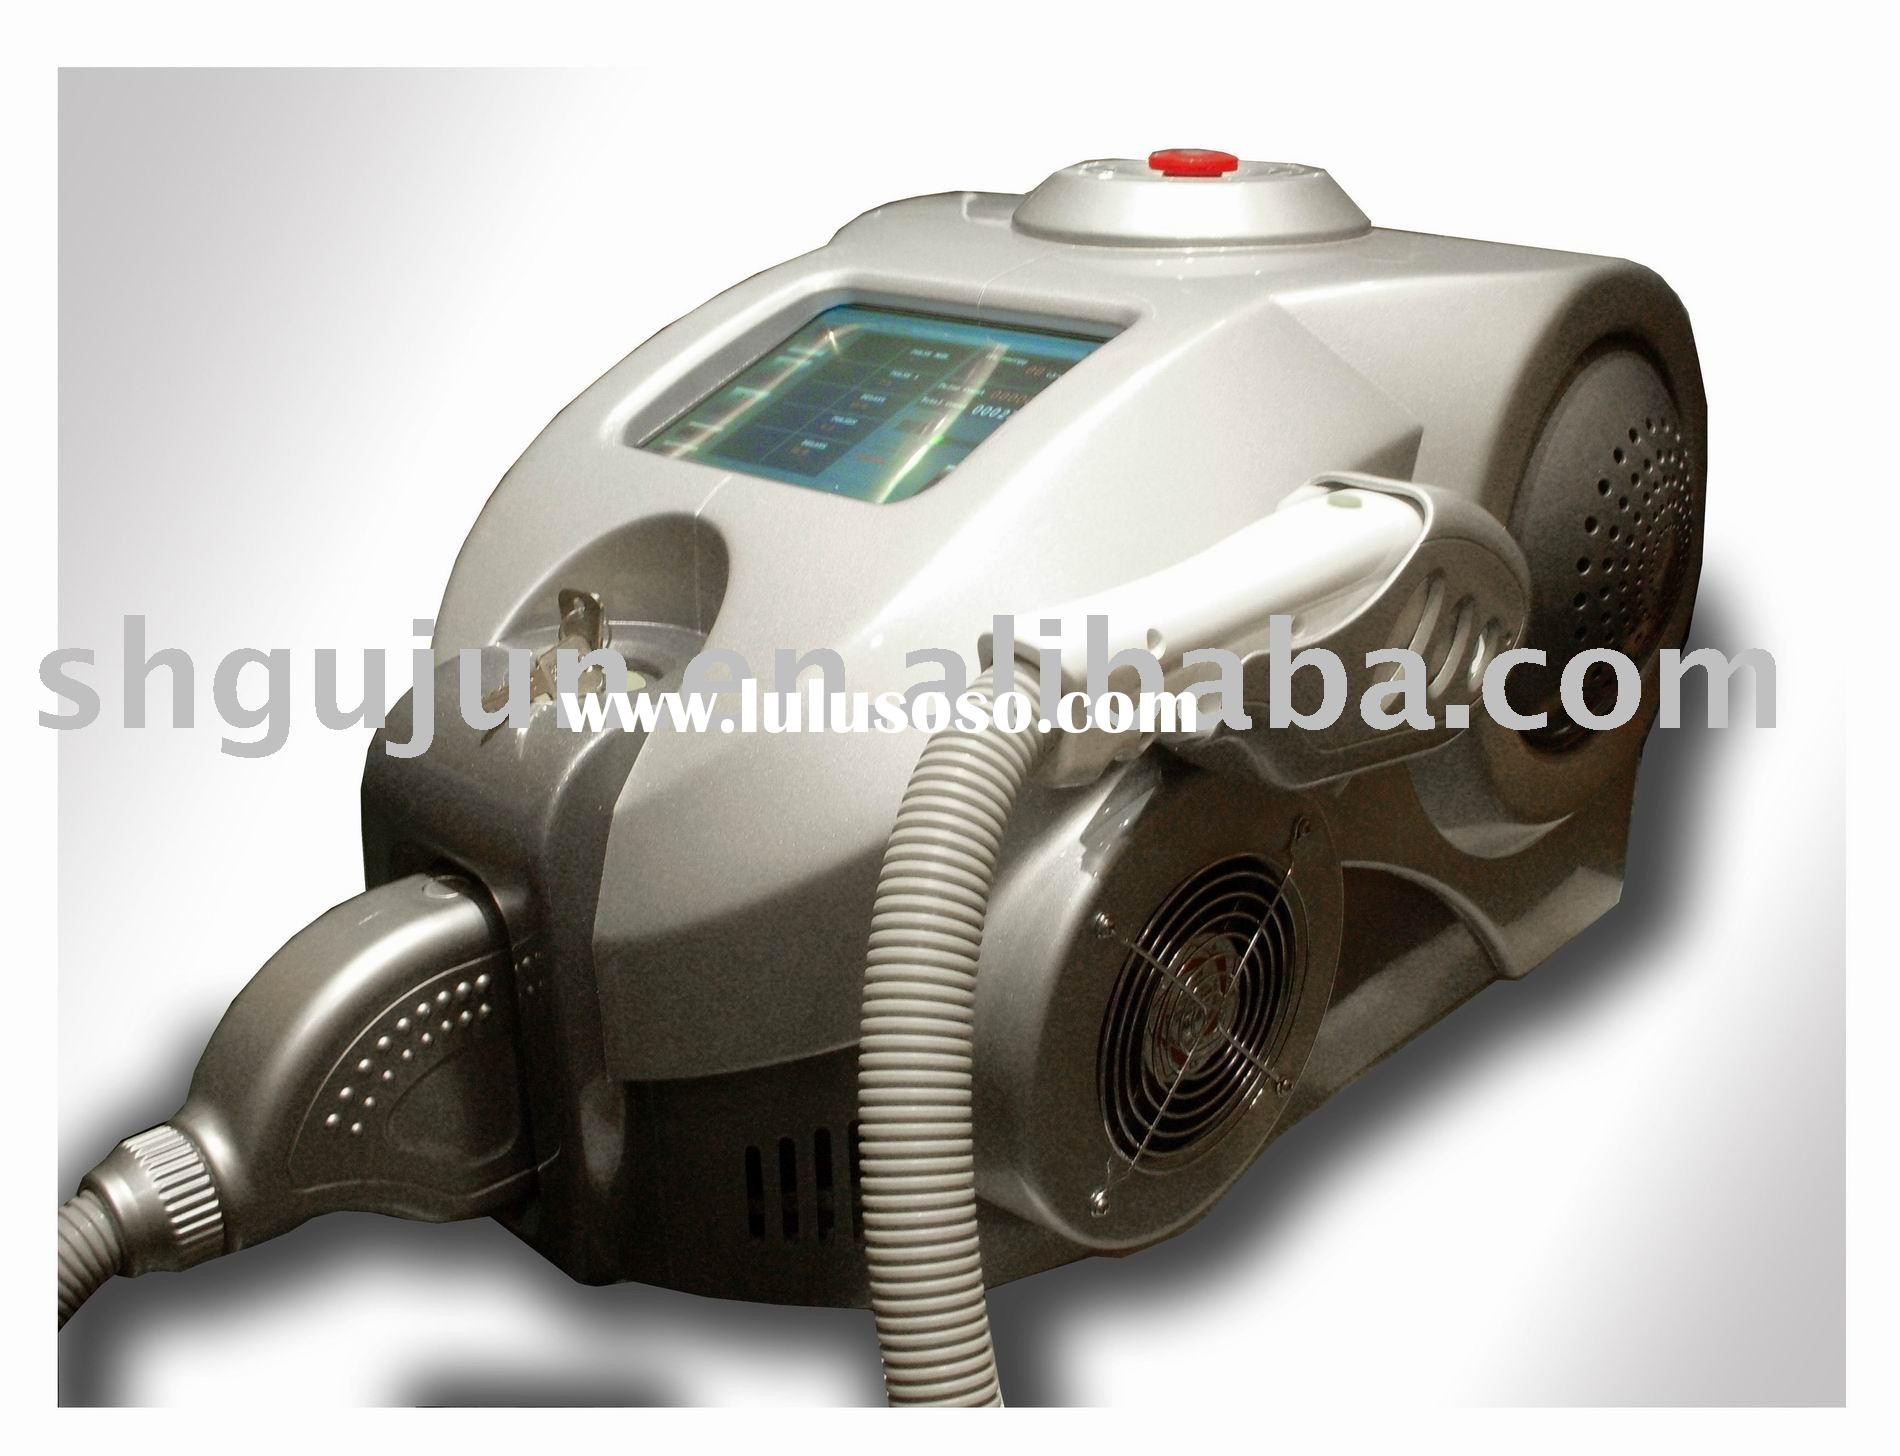 Professional IPL Machine used in Clinic or Spa